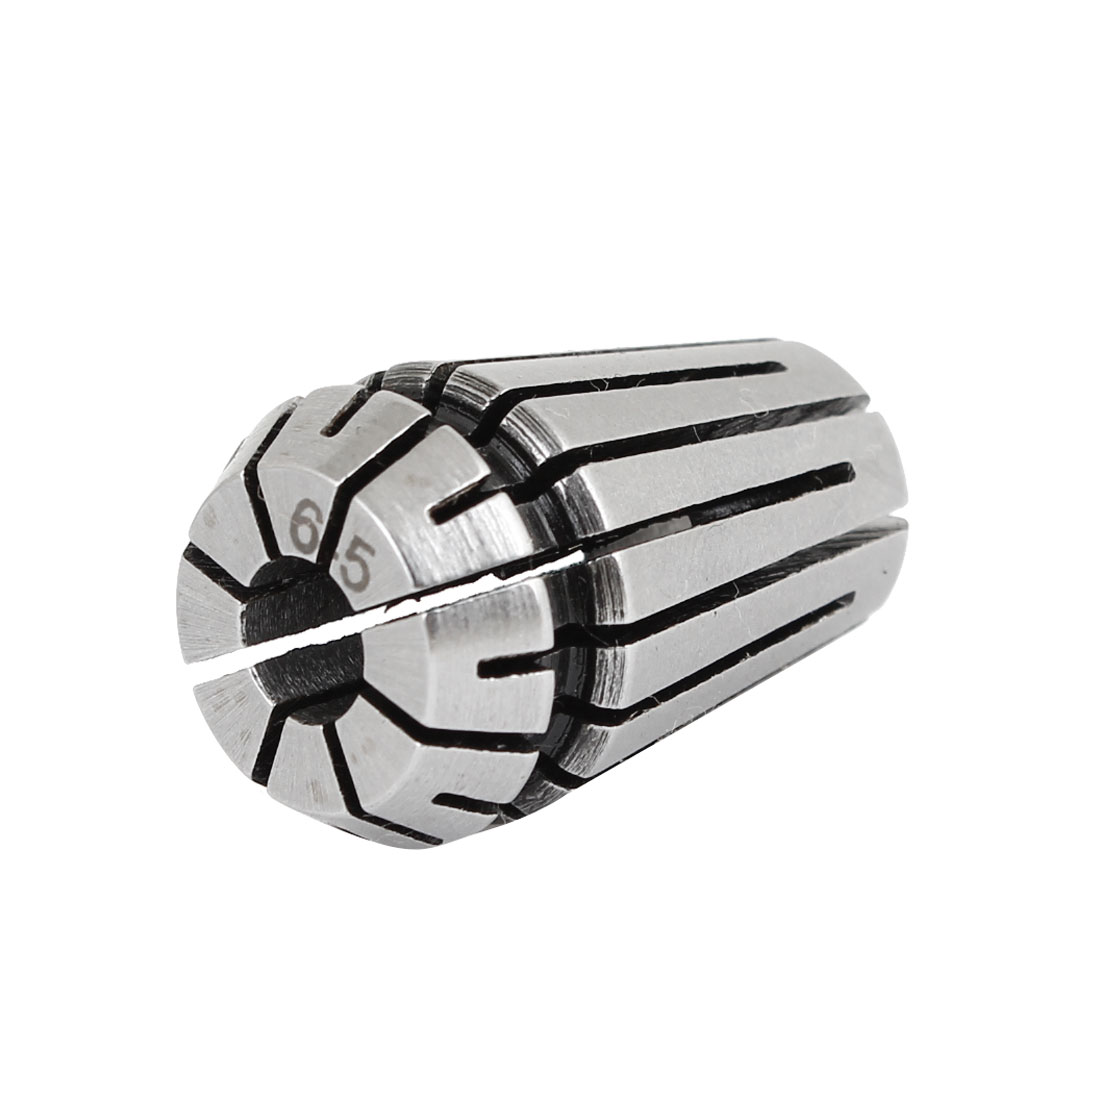 Clamping Range 6-5mm ER16 Precision Spring Collet Reaming Part